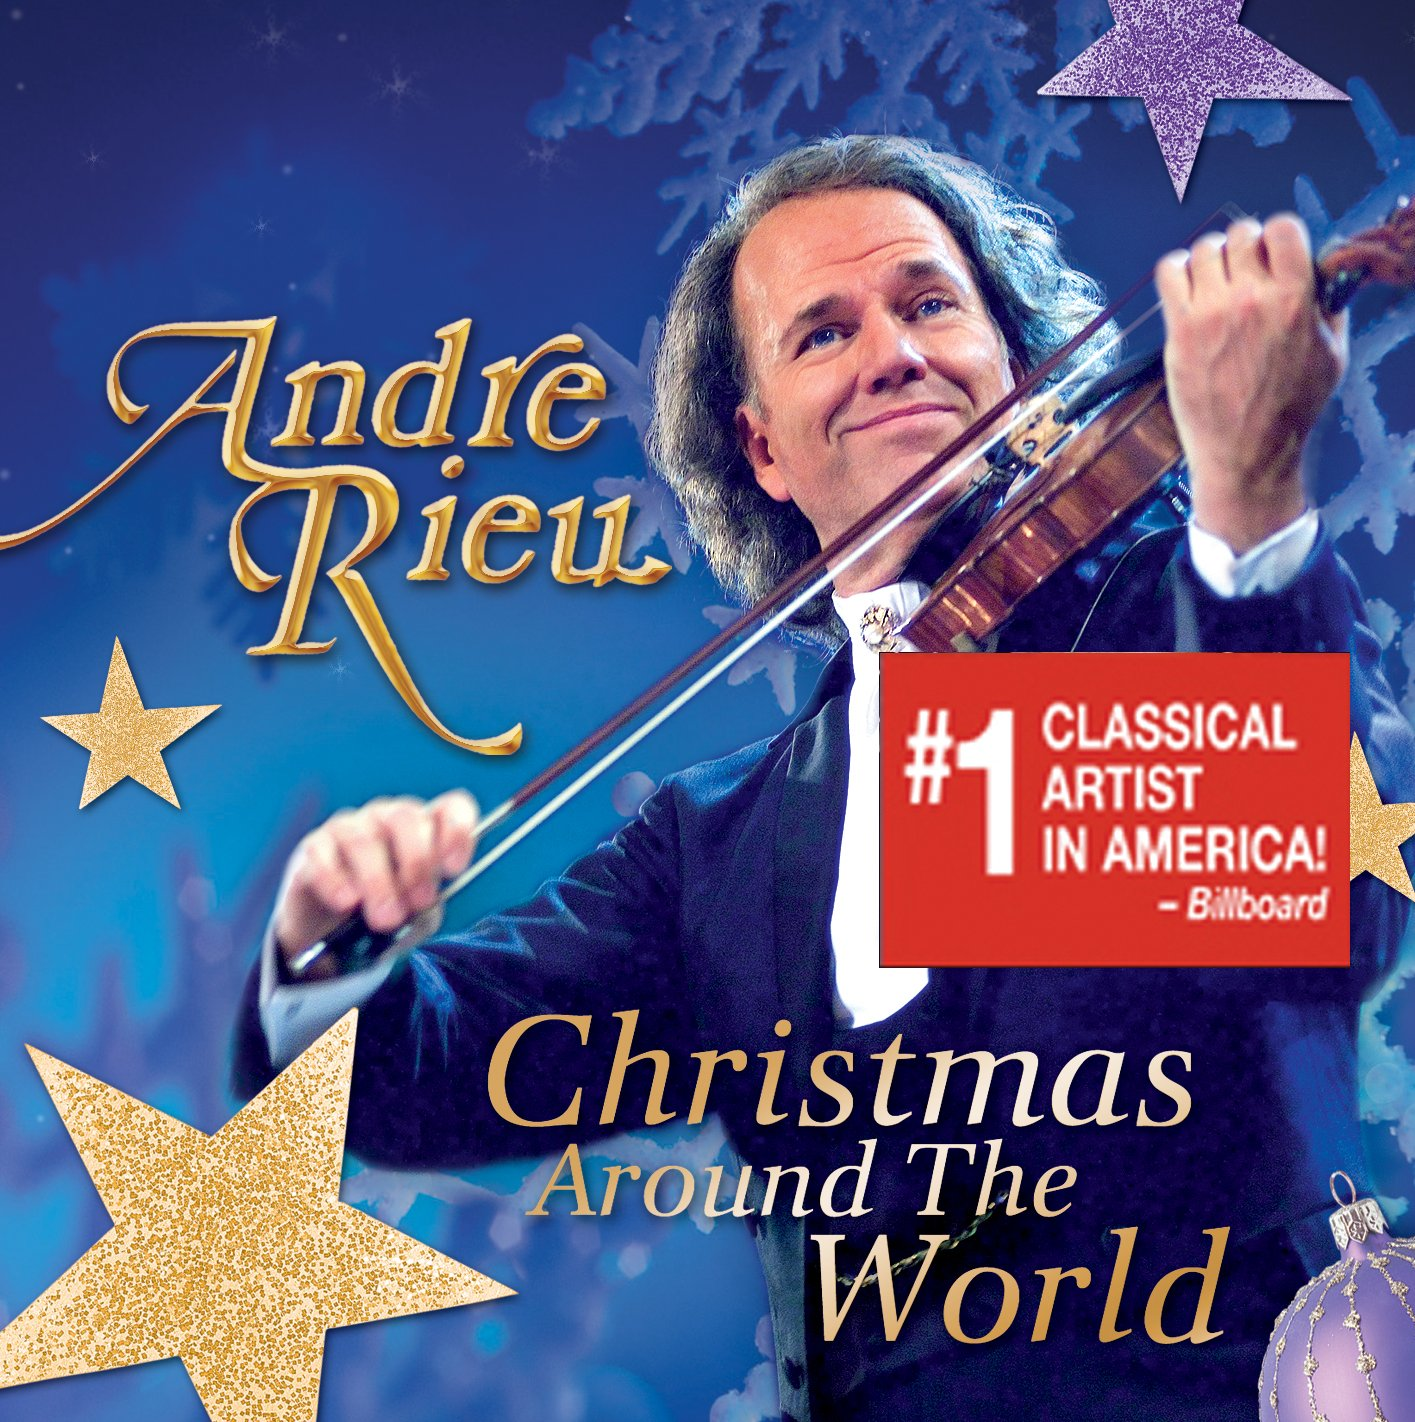 Andre Rieu - Andre Rieu - Christmas Around the World - Amazon.com ...